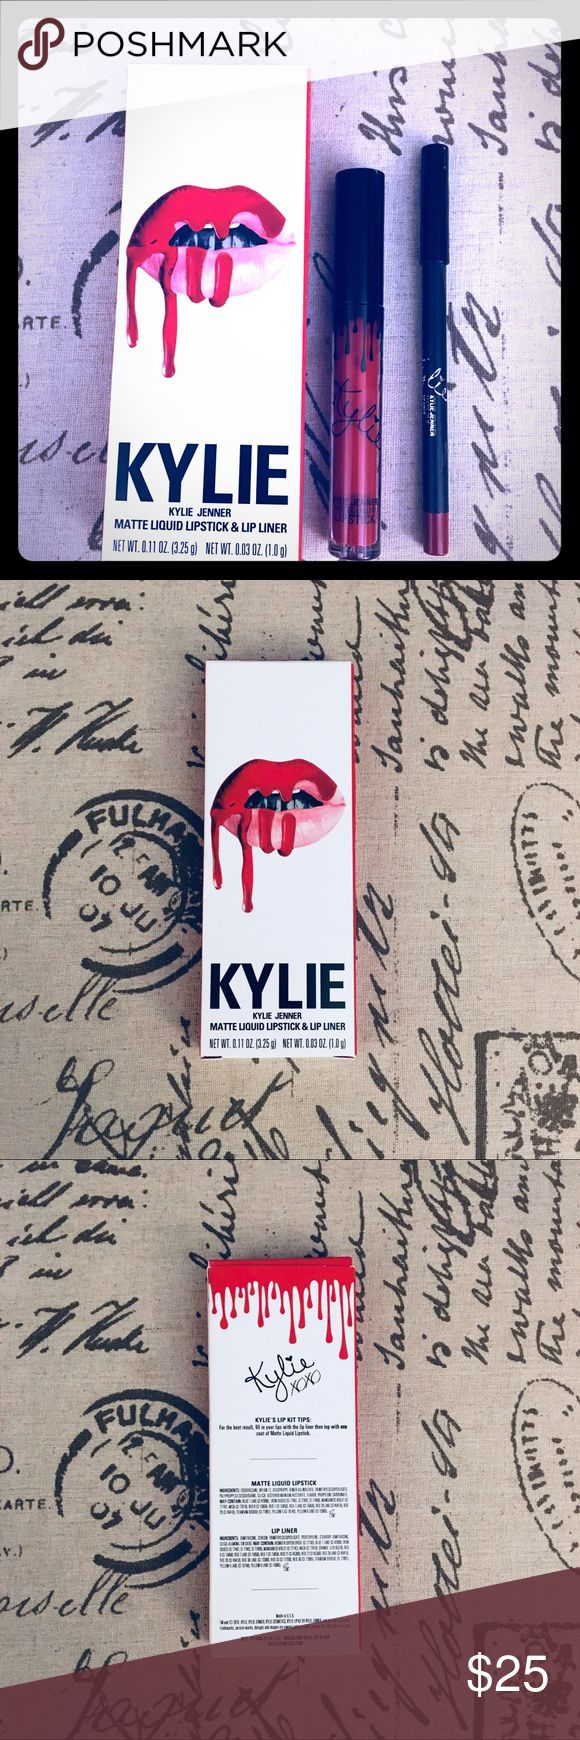 🆕 KYLIE JENNER Lip Kit Red Lipstick & Lip Liner -AUTHENTIC New in box Kylie Lip Kit  -Color: Mary Jo K, a true blue red  -Kit contains one matte liquid lipstick and one lip liner. -SOLD OUT on Kylie's website Kylie Cosmetics Makeup Lipstick